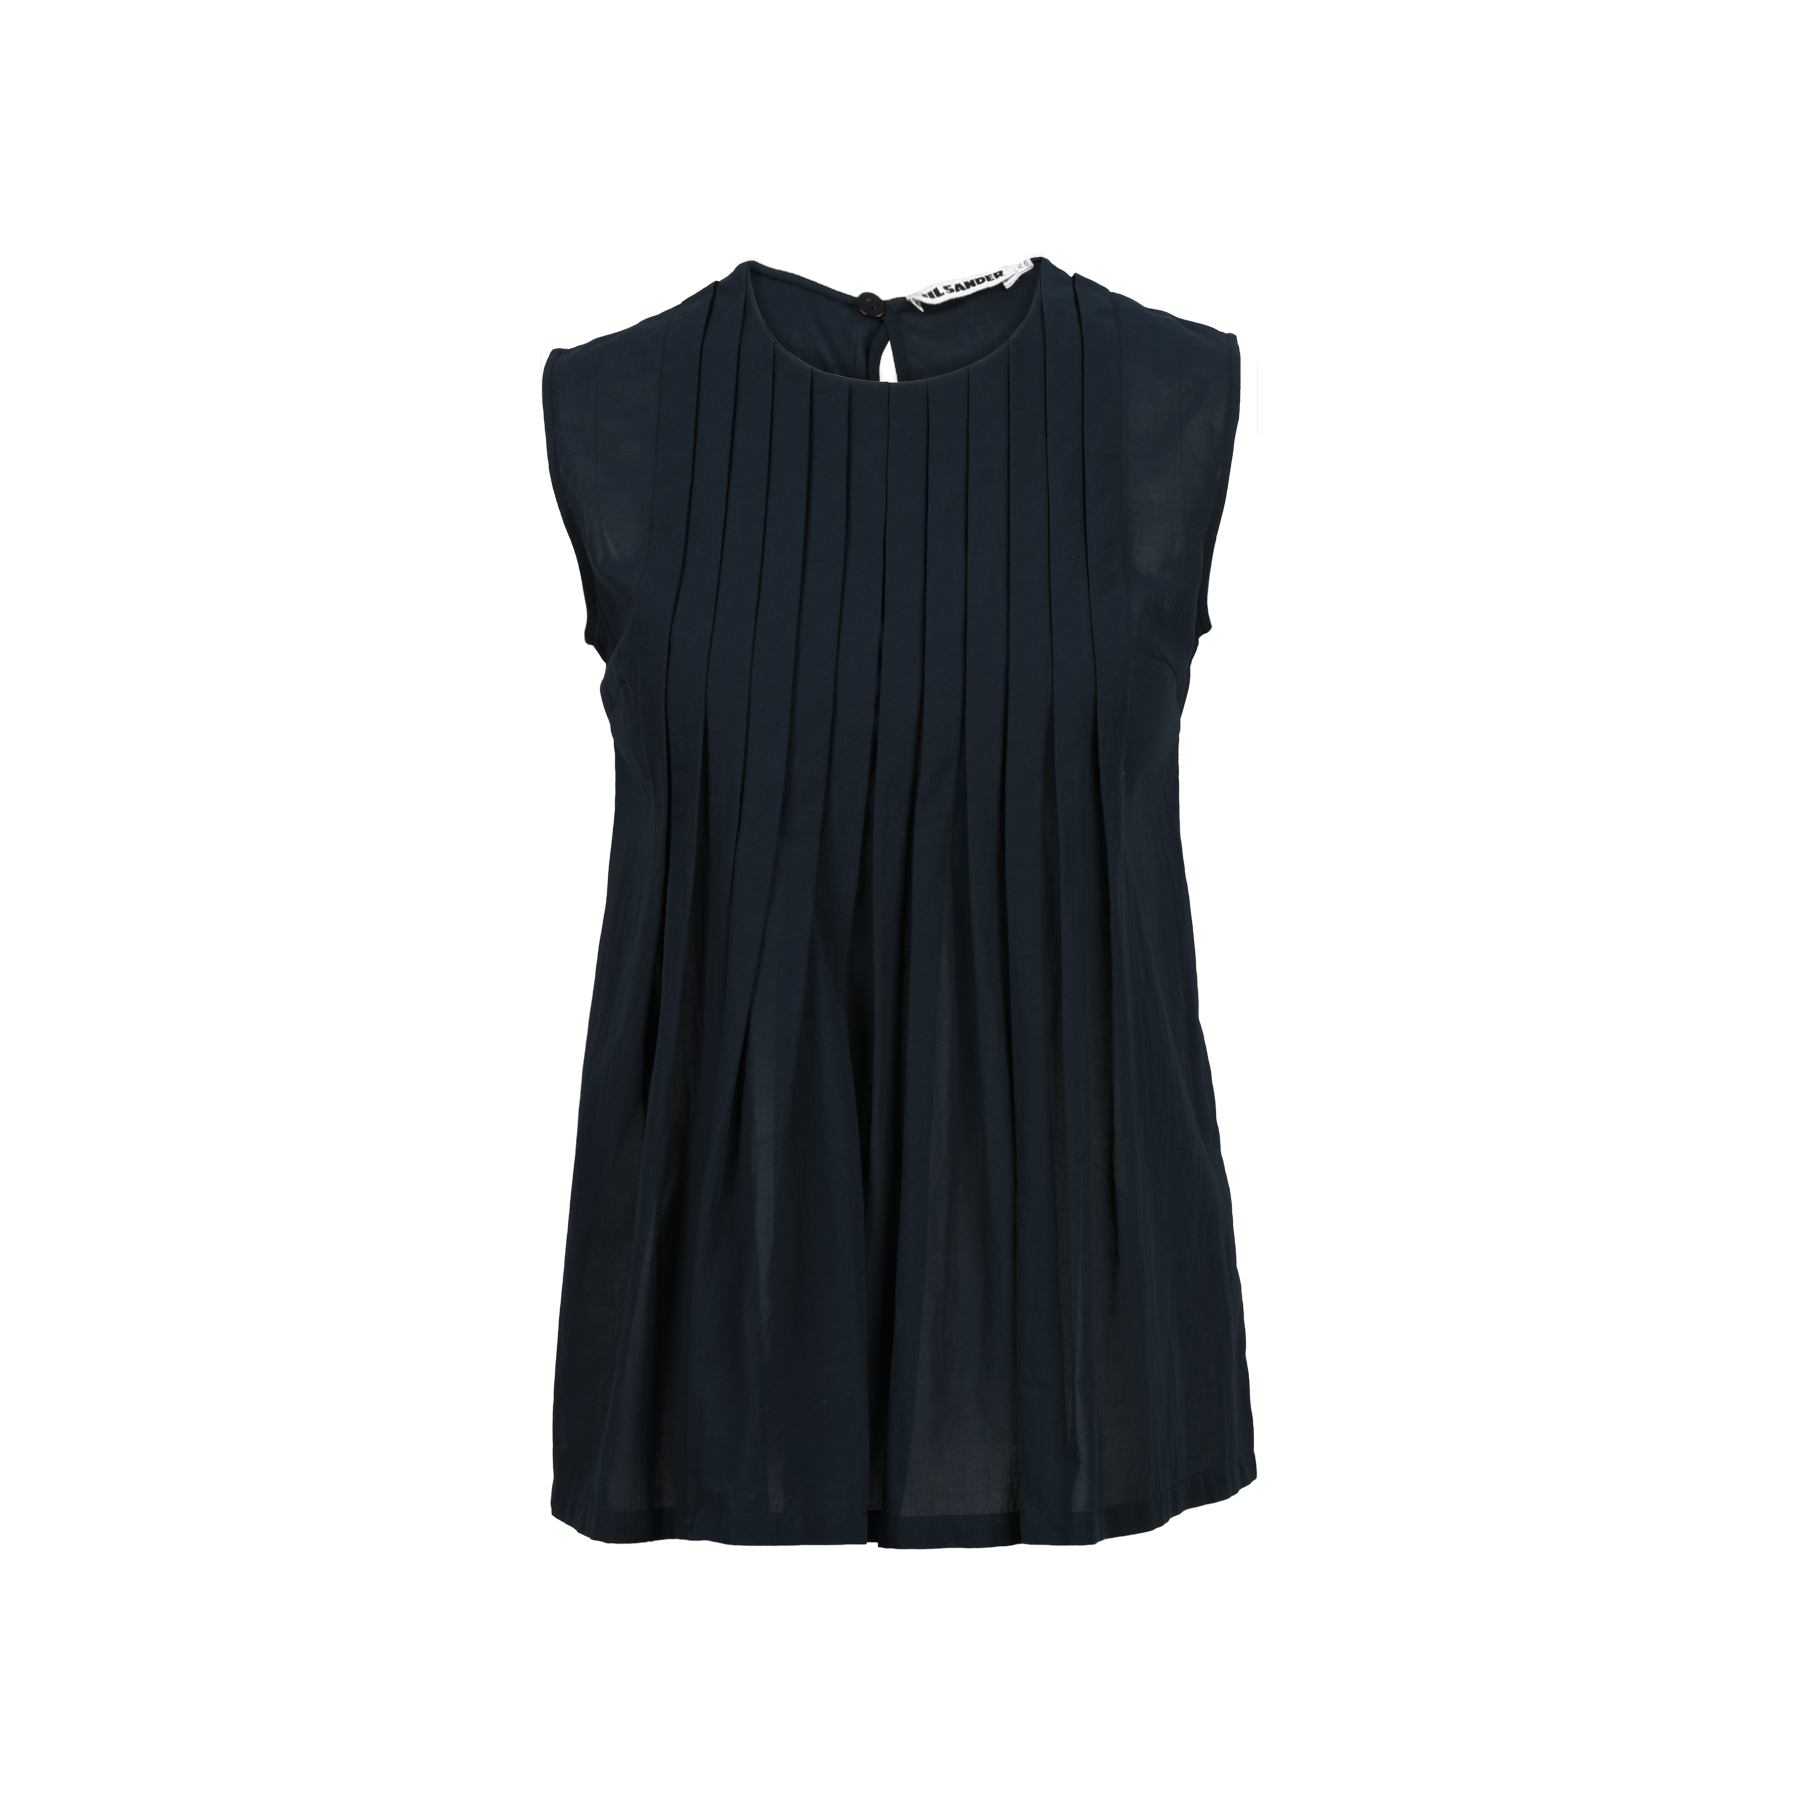 1153545929784d Authentic Second Hand Jil Sander Pleated Sleeveless Top (PSS-200-00727)